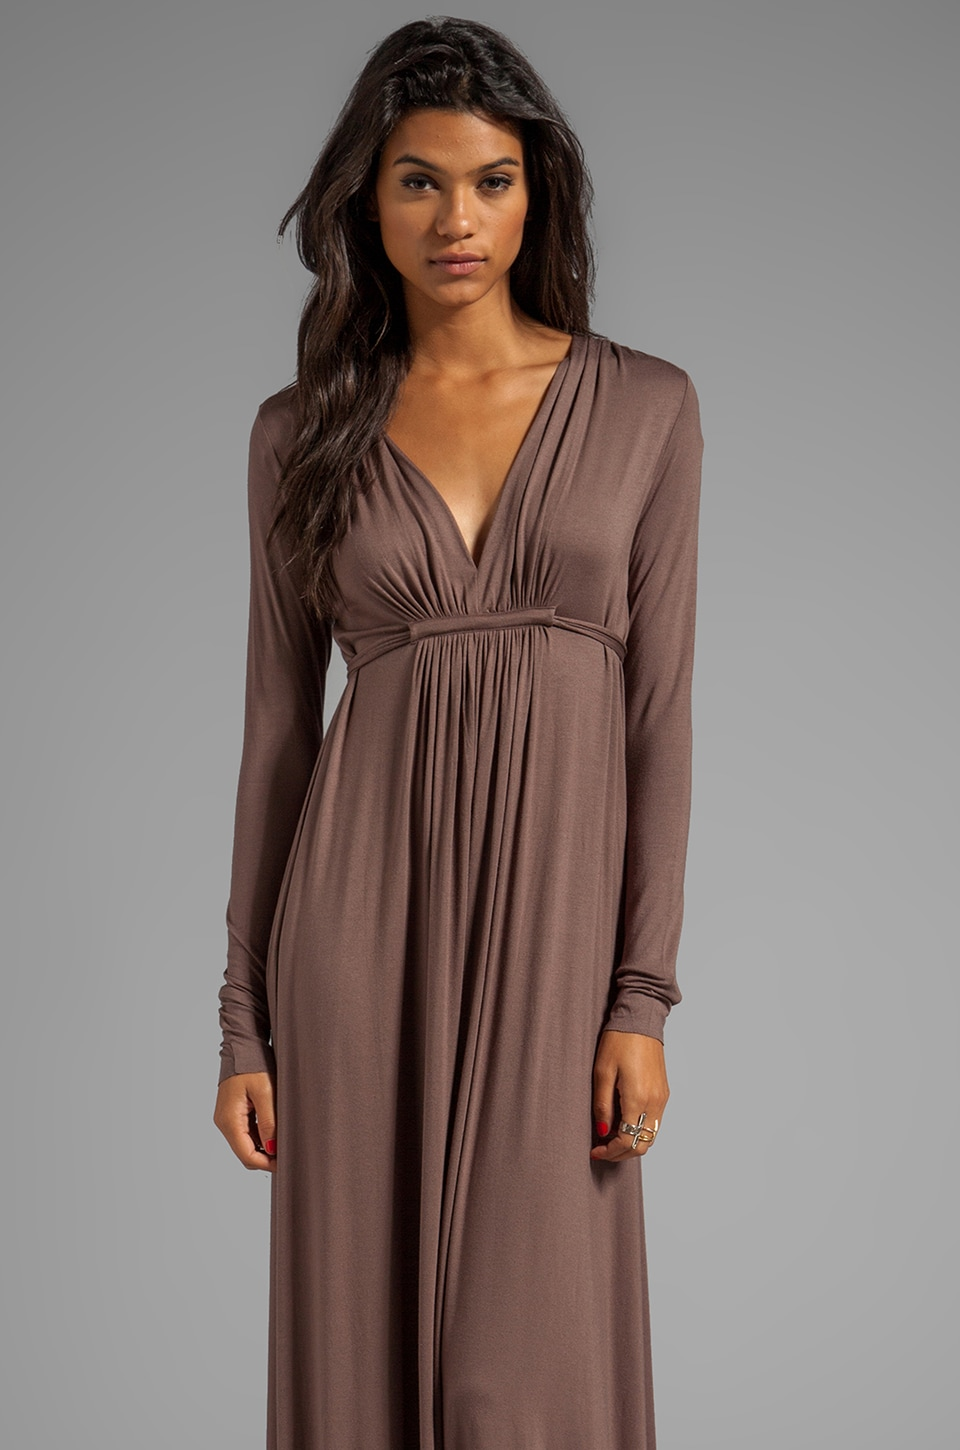 Rachel Pally Long Sleeve Full Length Caftan Dress in Alloy